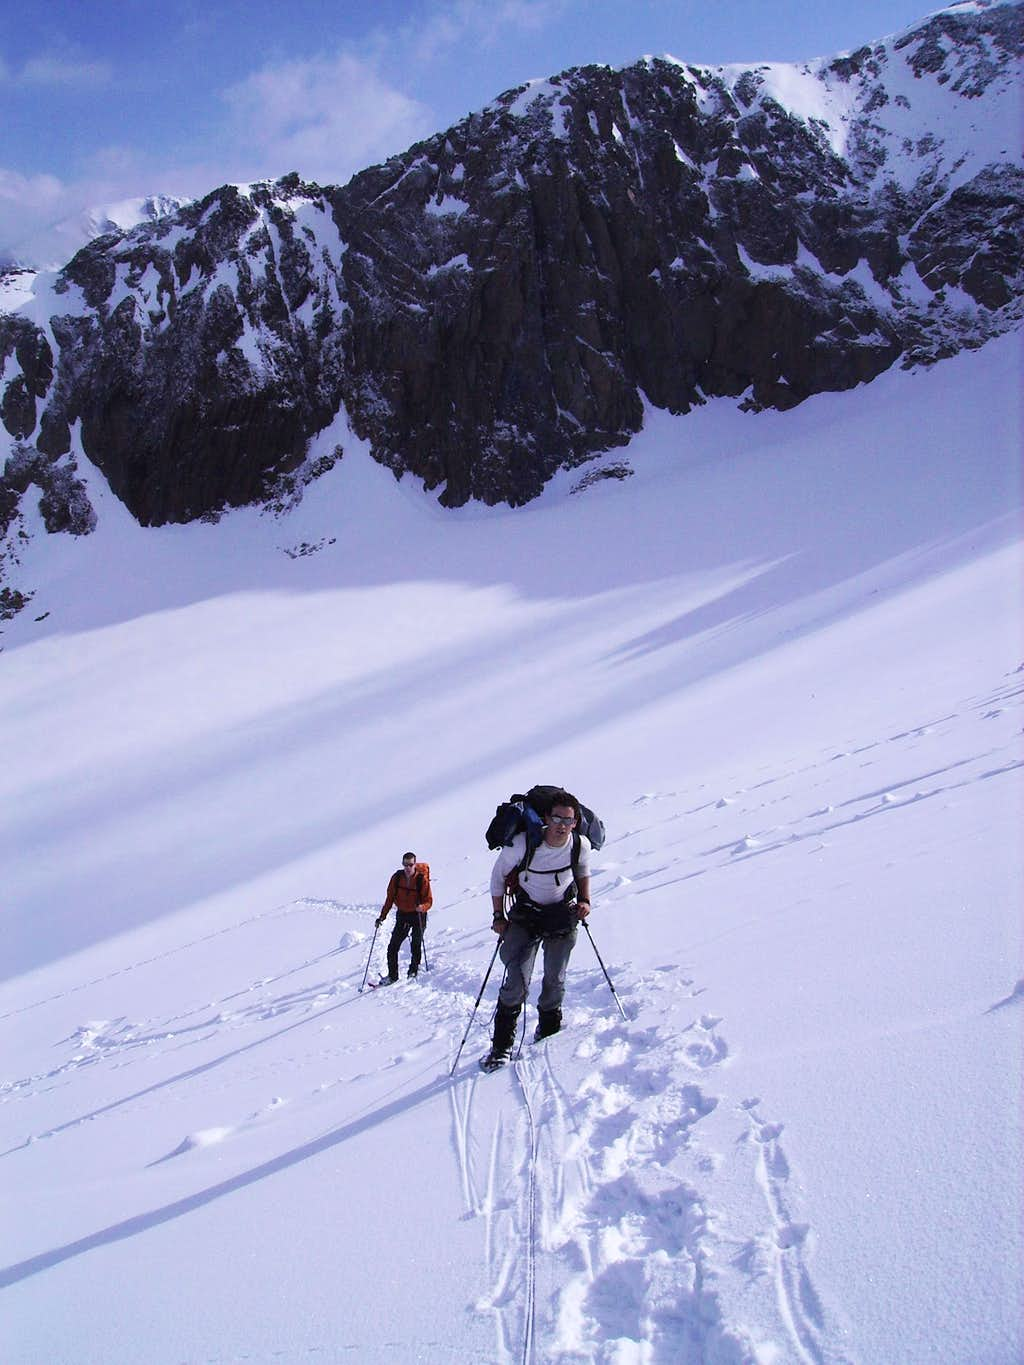 The ascent to the North Face